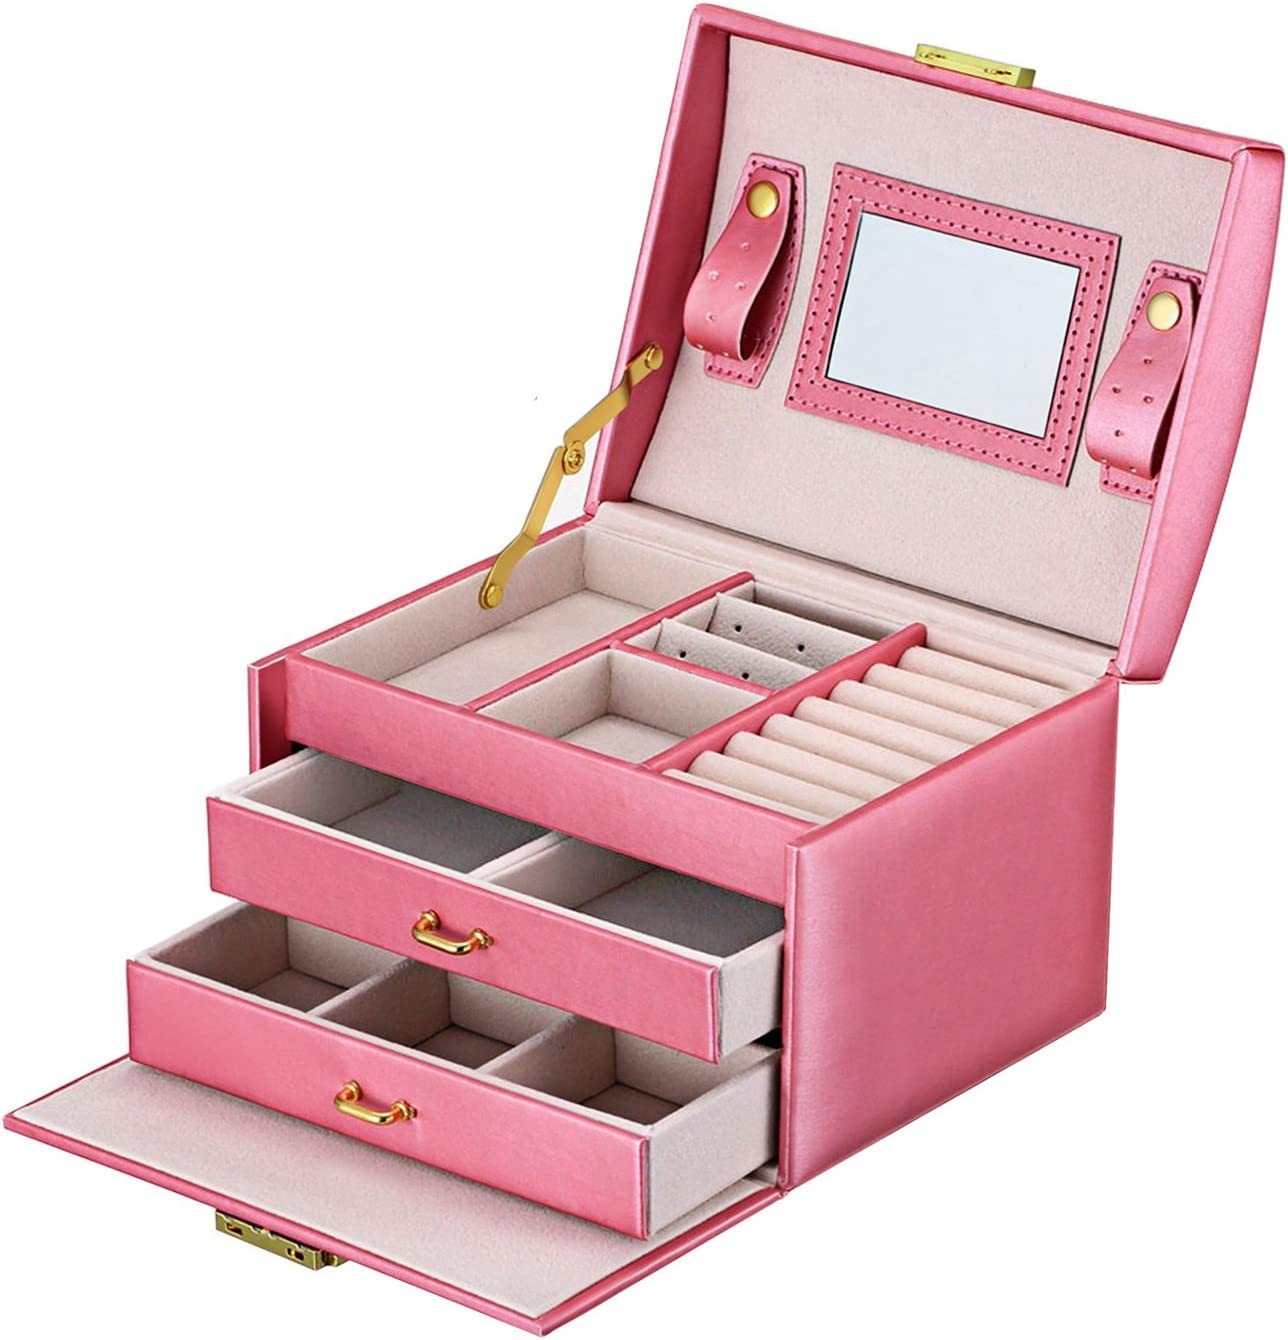 Amazon Com Goldwheat Jewelry Box Leather Earring Rings Organizer Mirrored Display Case Gift For Women Girls Lock And Key Pink Home Kitchen